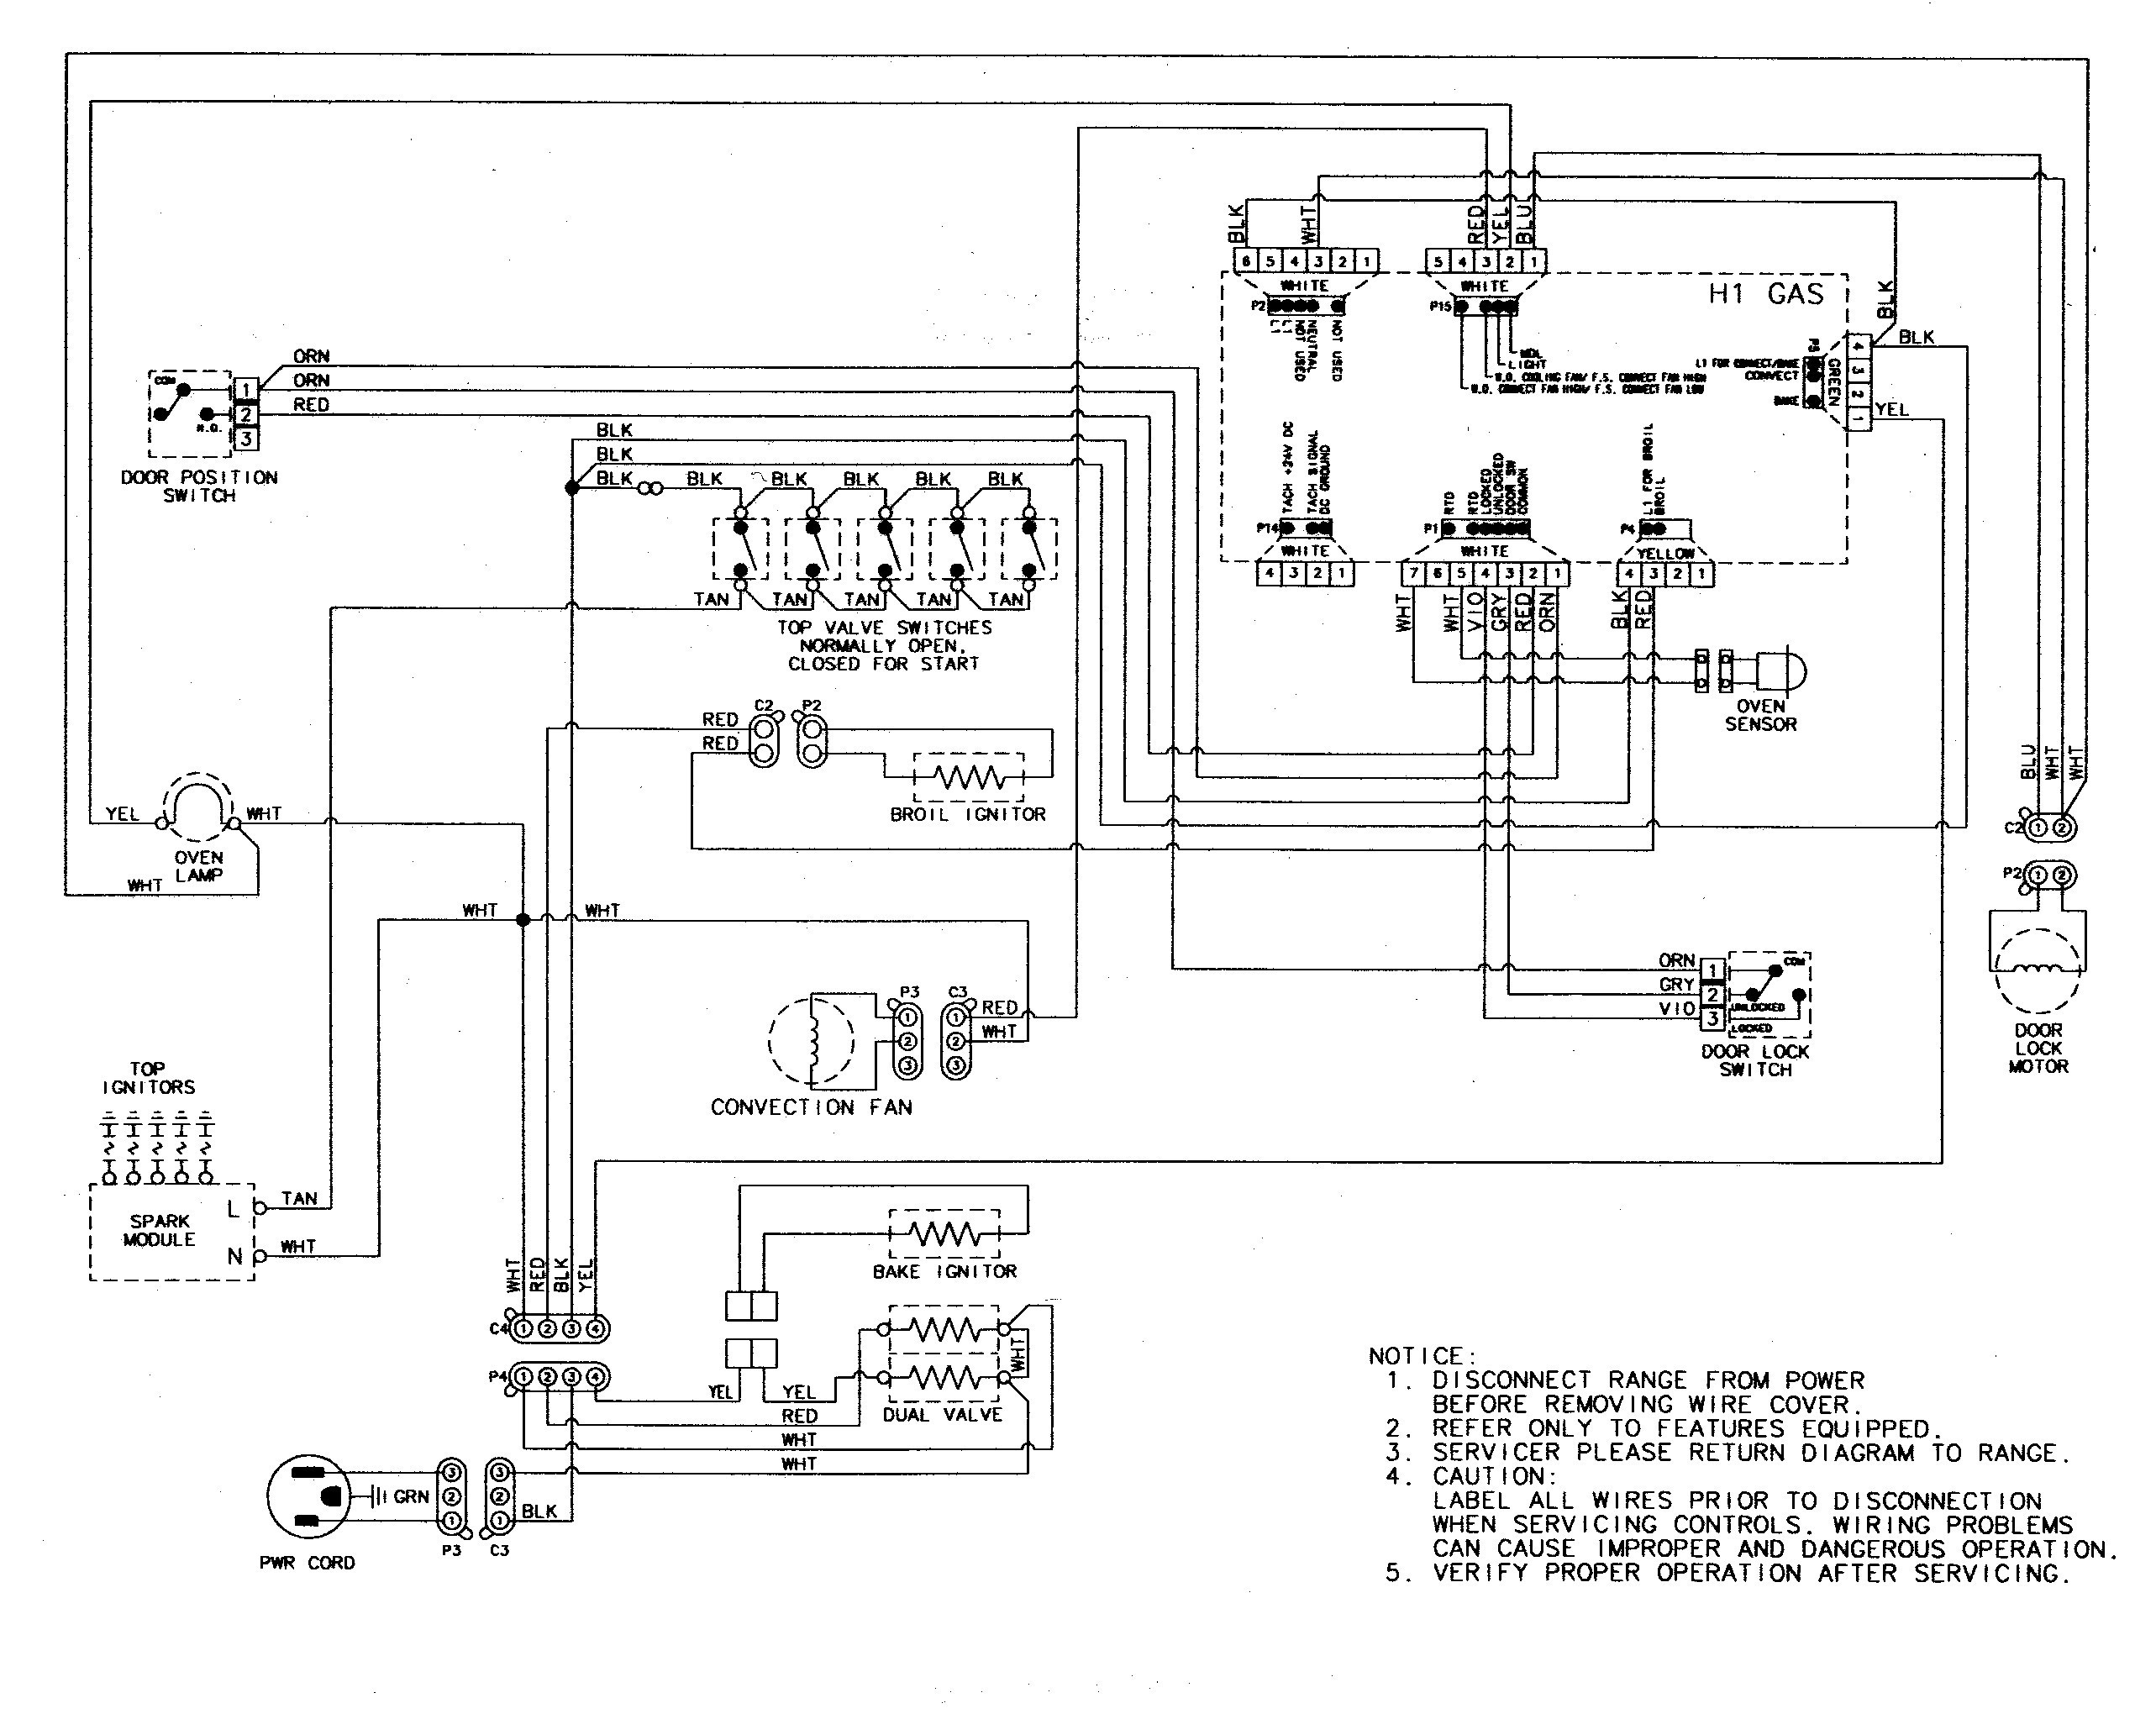 Whirlpool Dryer Schematic Wiring Diagram - Wiring Diagram for A Whirlpool Dryer Collection Wiring Diagram for Maytag atlantis Dryer New Beautiful Download Wiring Diagram 8i